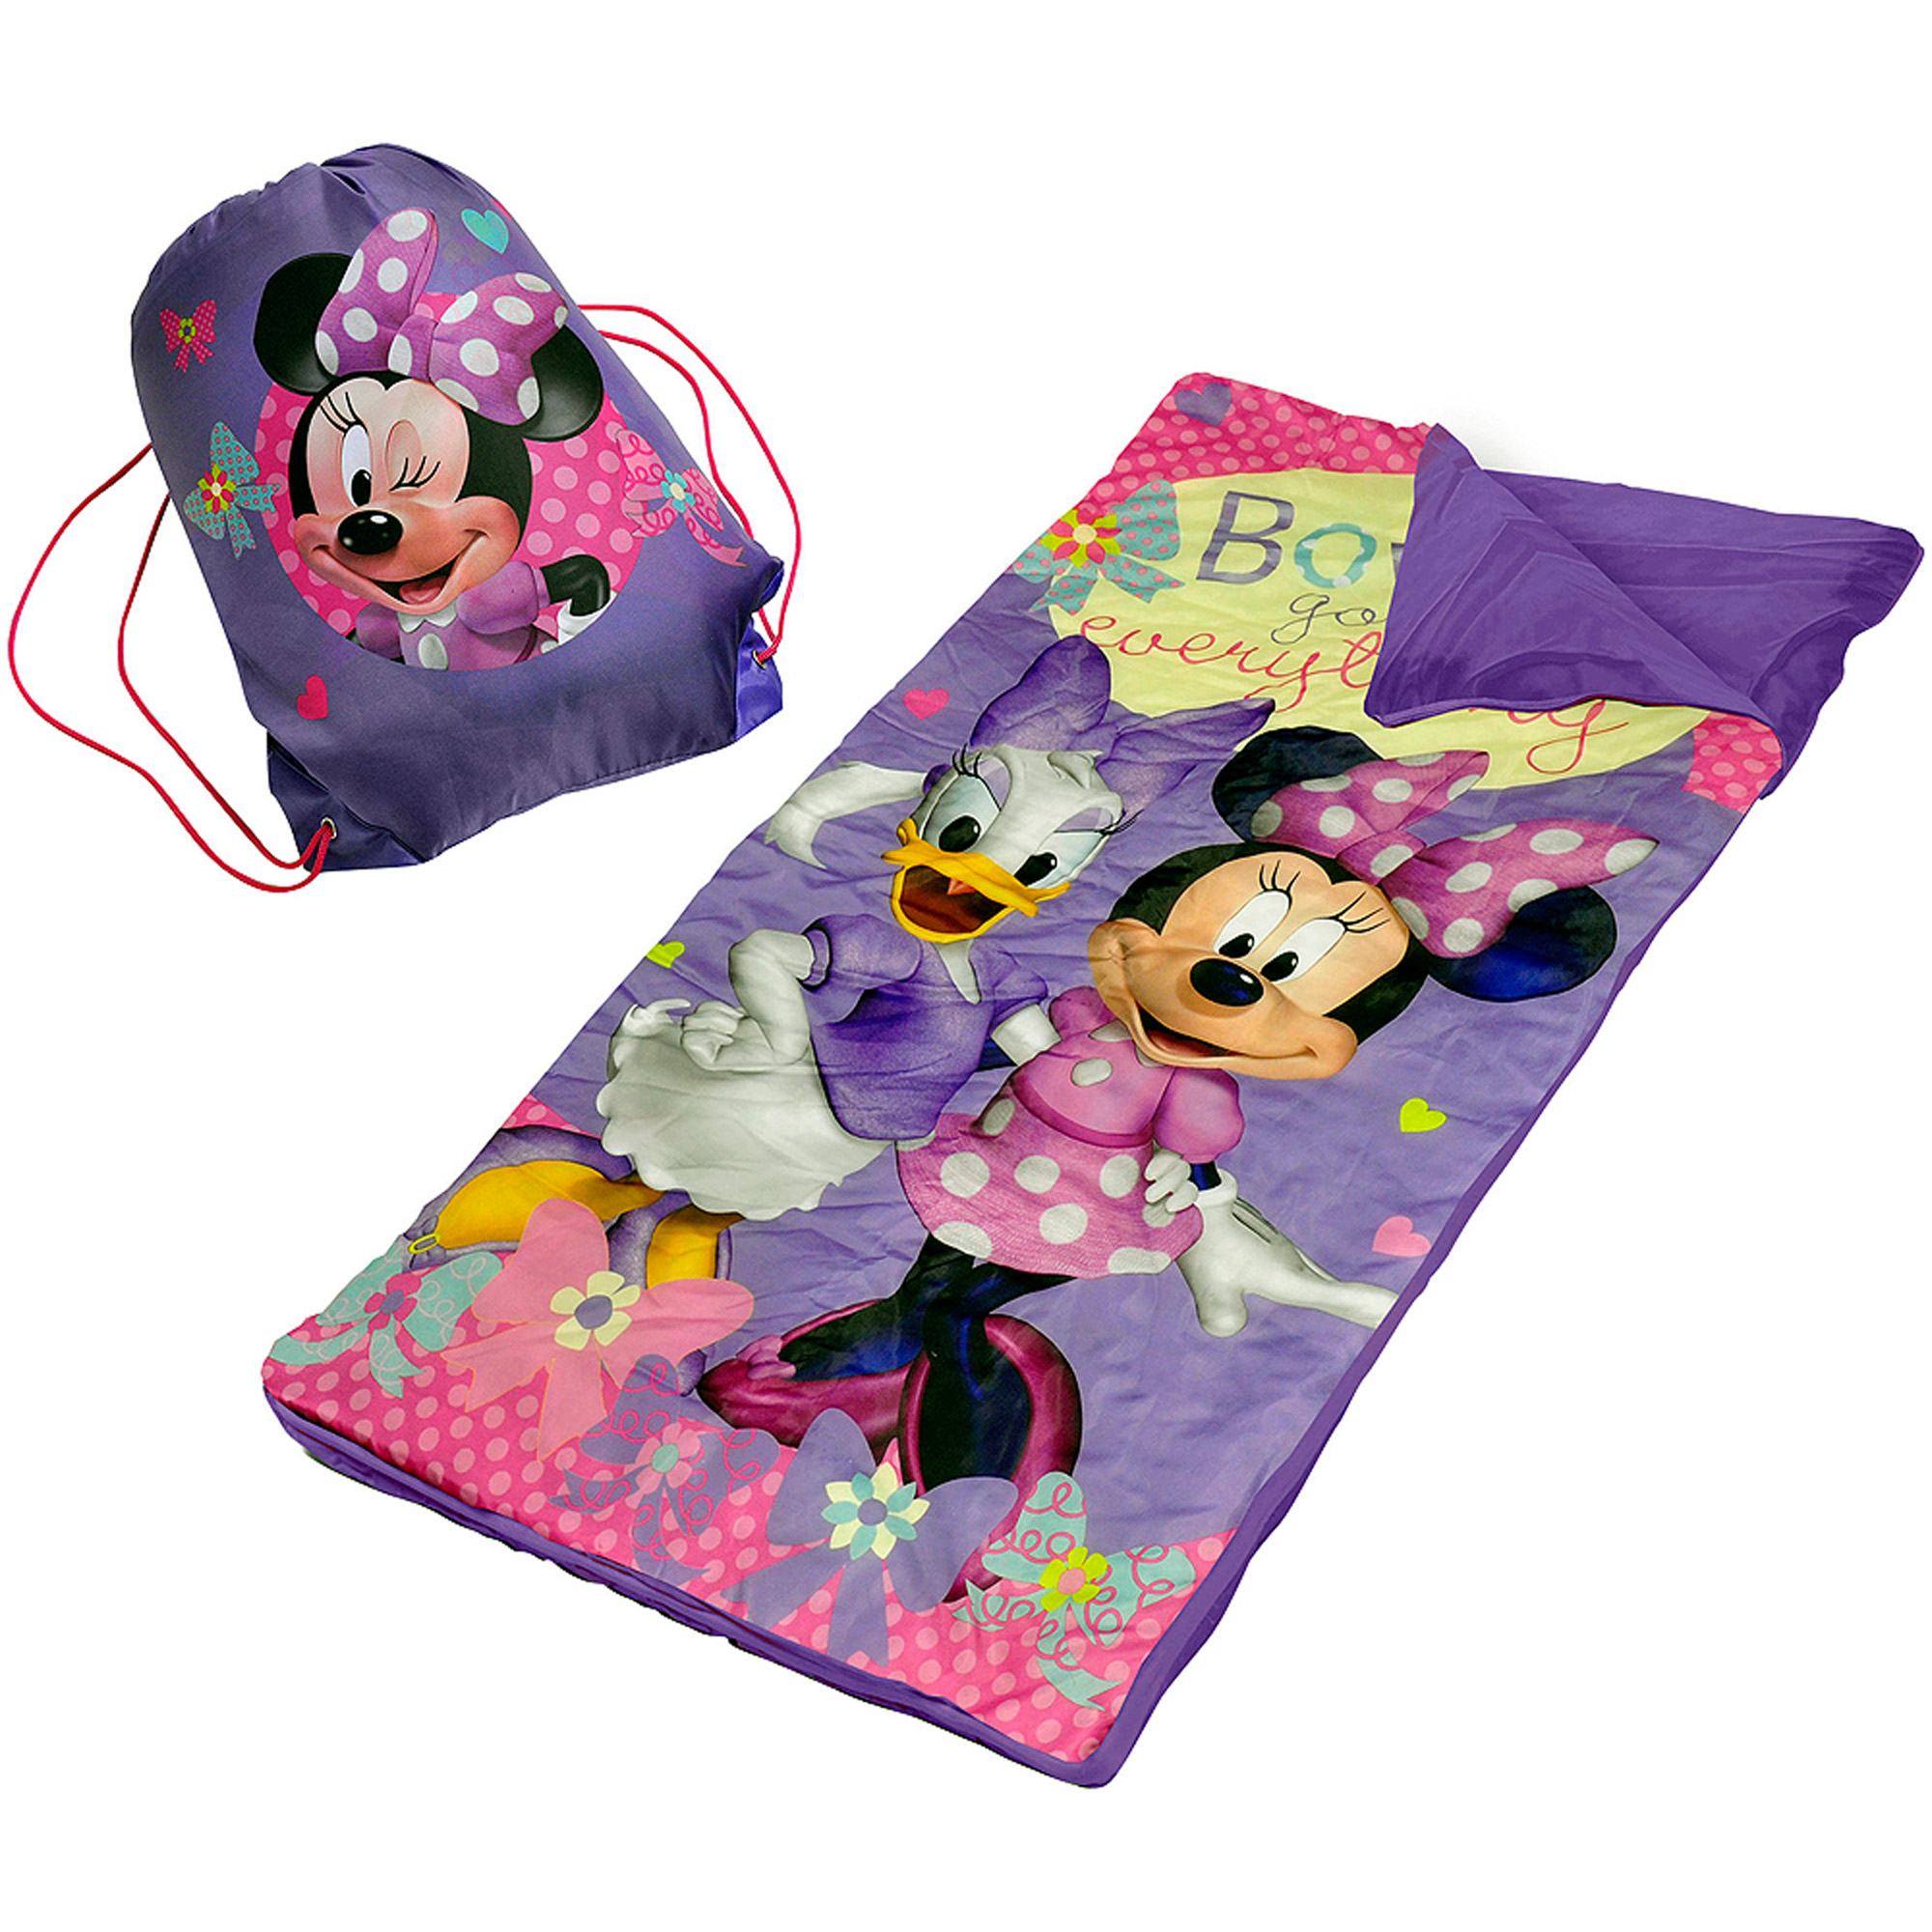 Disney Minnie Mouse Slumber Set/Nap Mat with BONUS Sling Bag